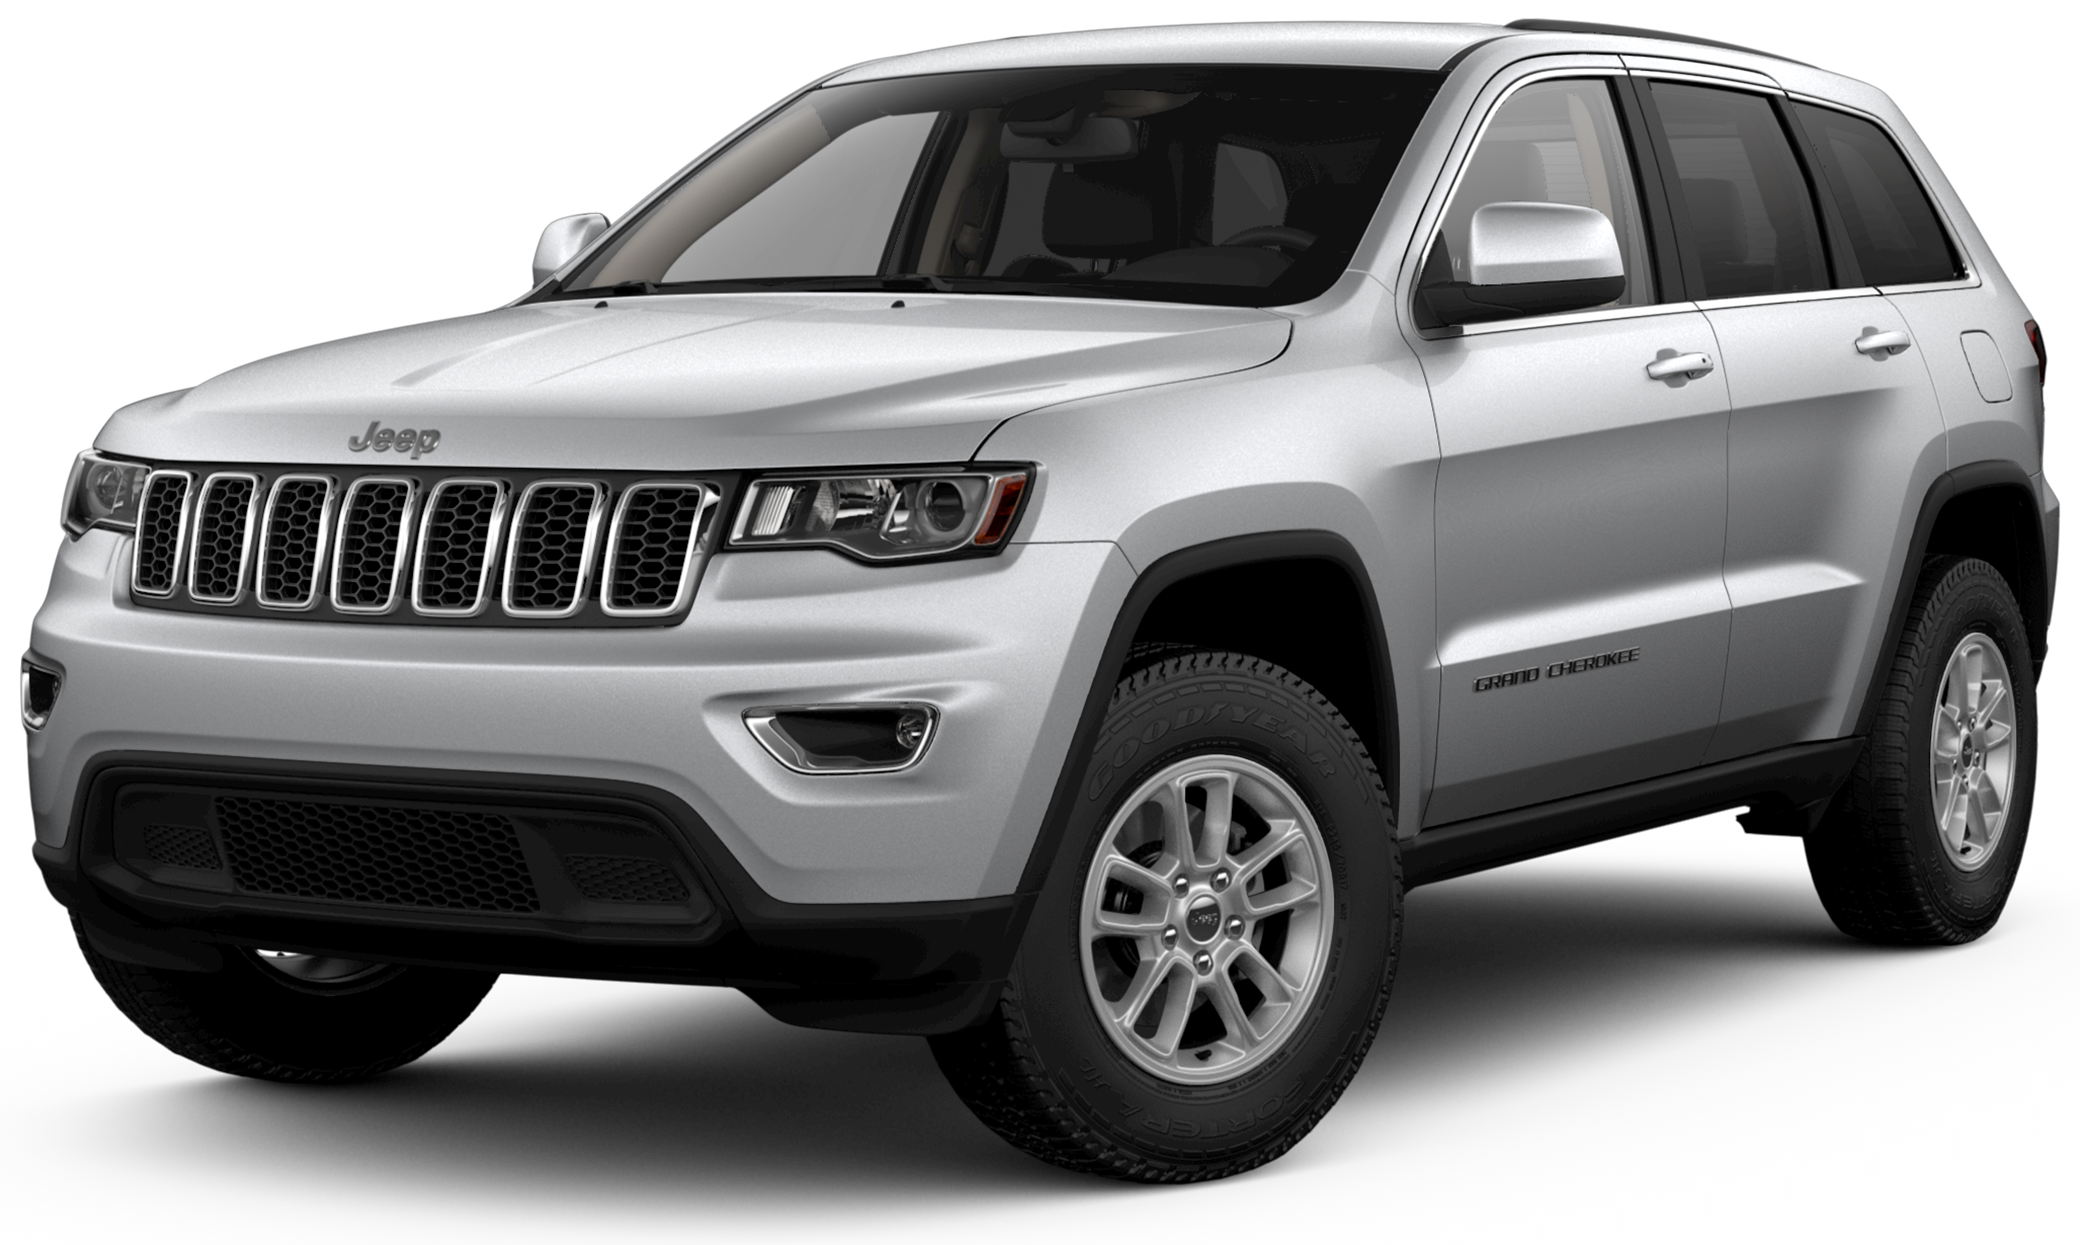 River Oaks Dodge >> 2019 Jeep Grand Cherokee Incentives, Specials & Offers in ...